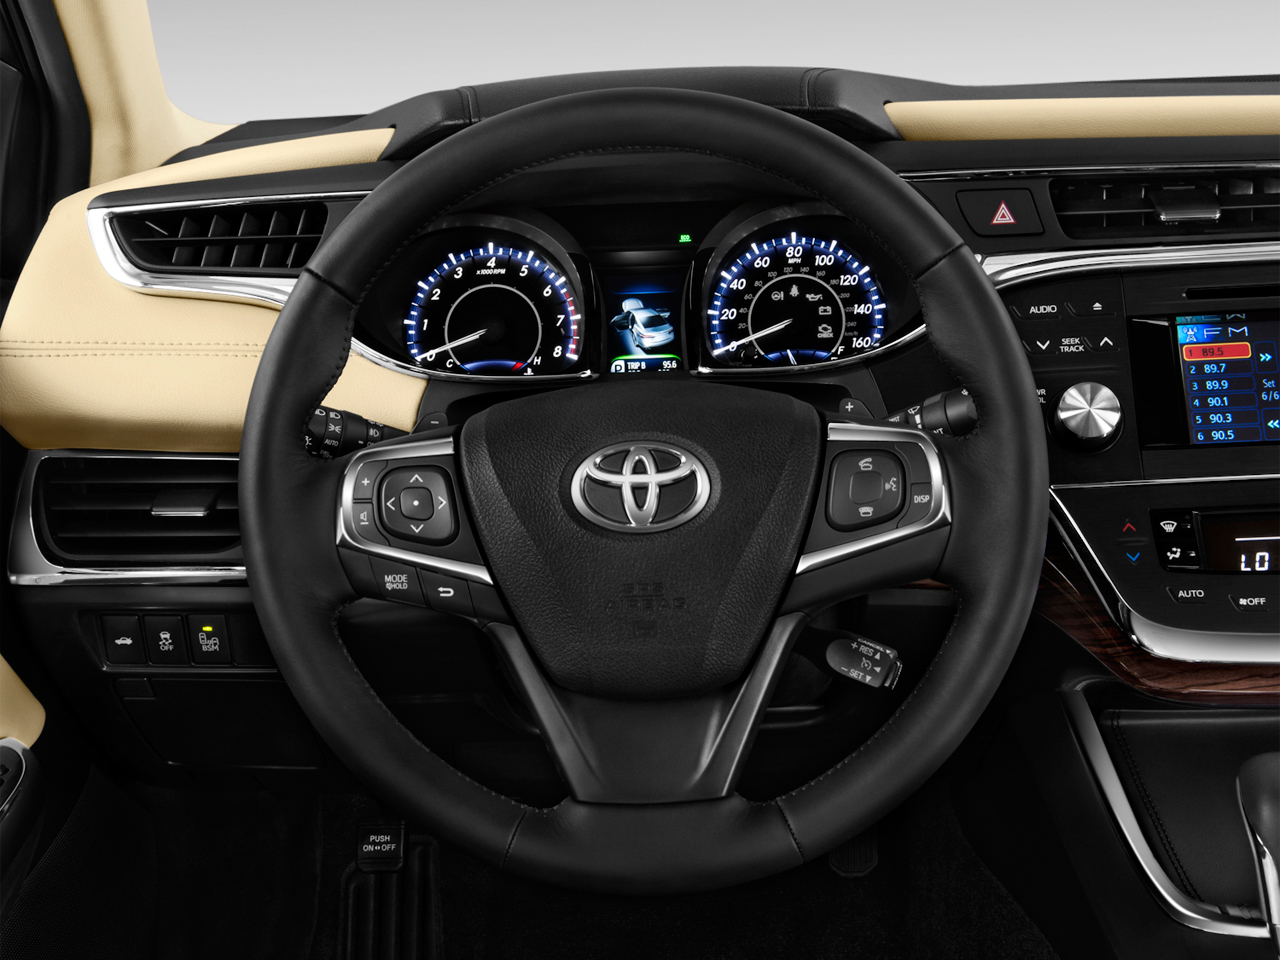 2013 Toyota Avalon XLE Sedan Steering Wheel